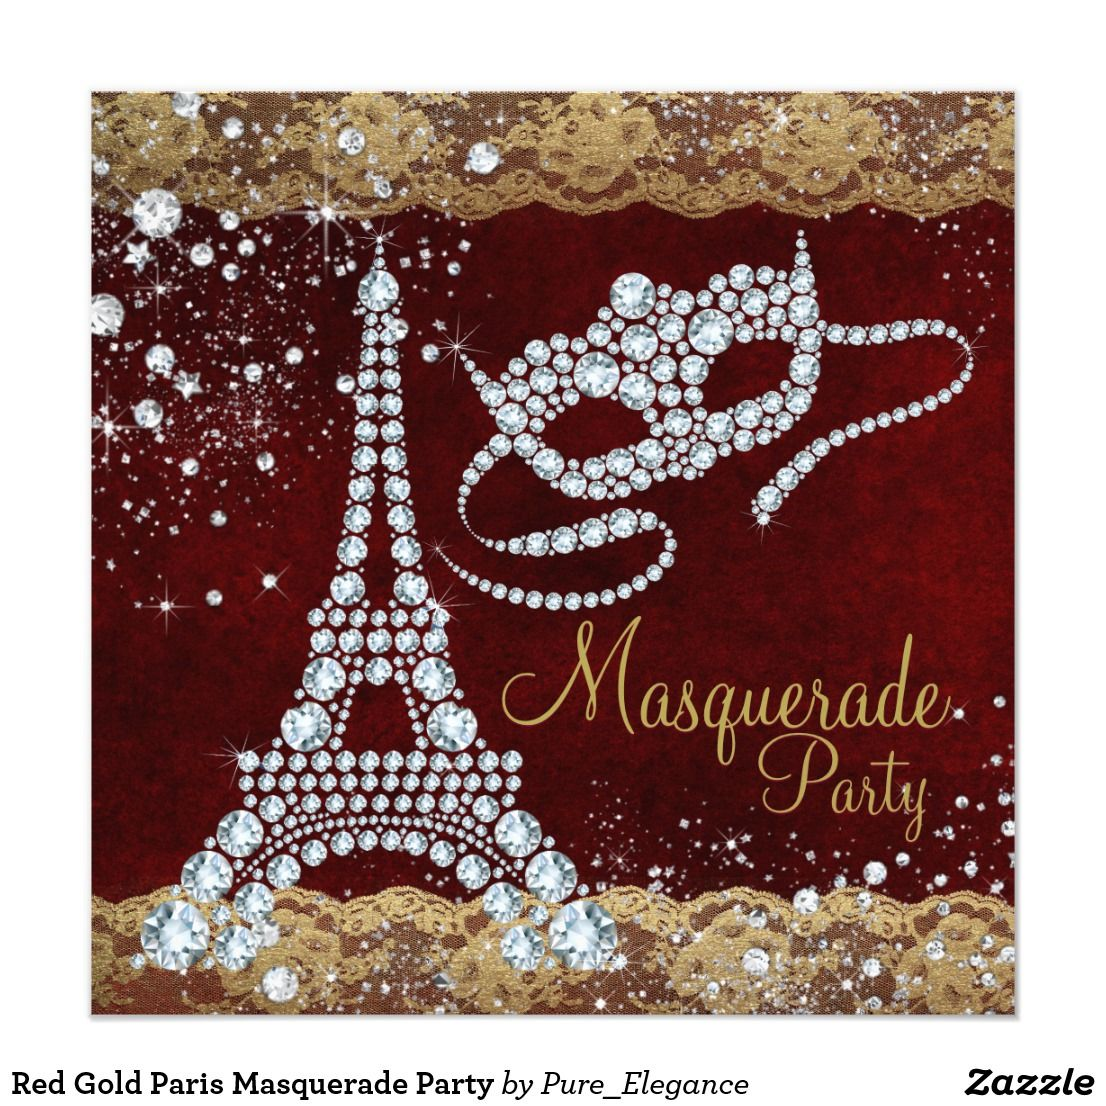 Red Gold Paris Masquerade Party Invitation | Pinterest | Masquerade ...